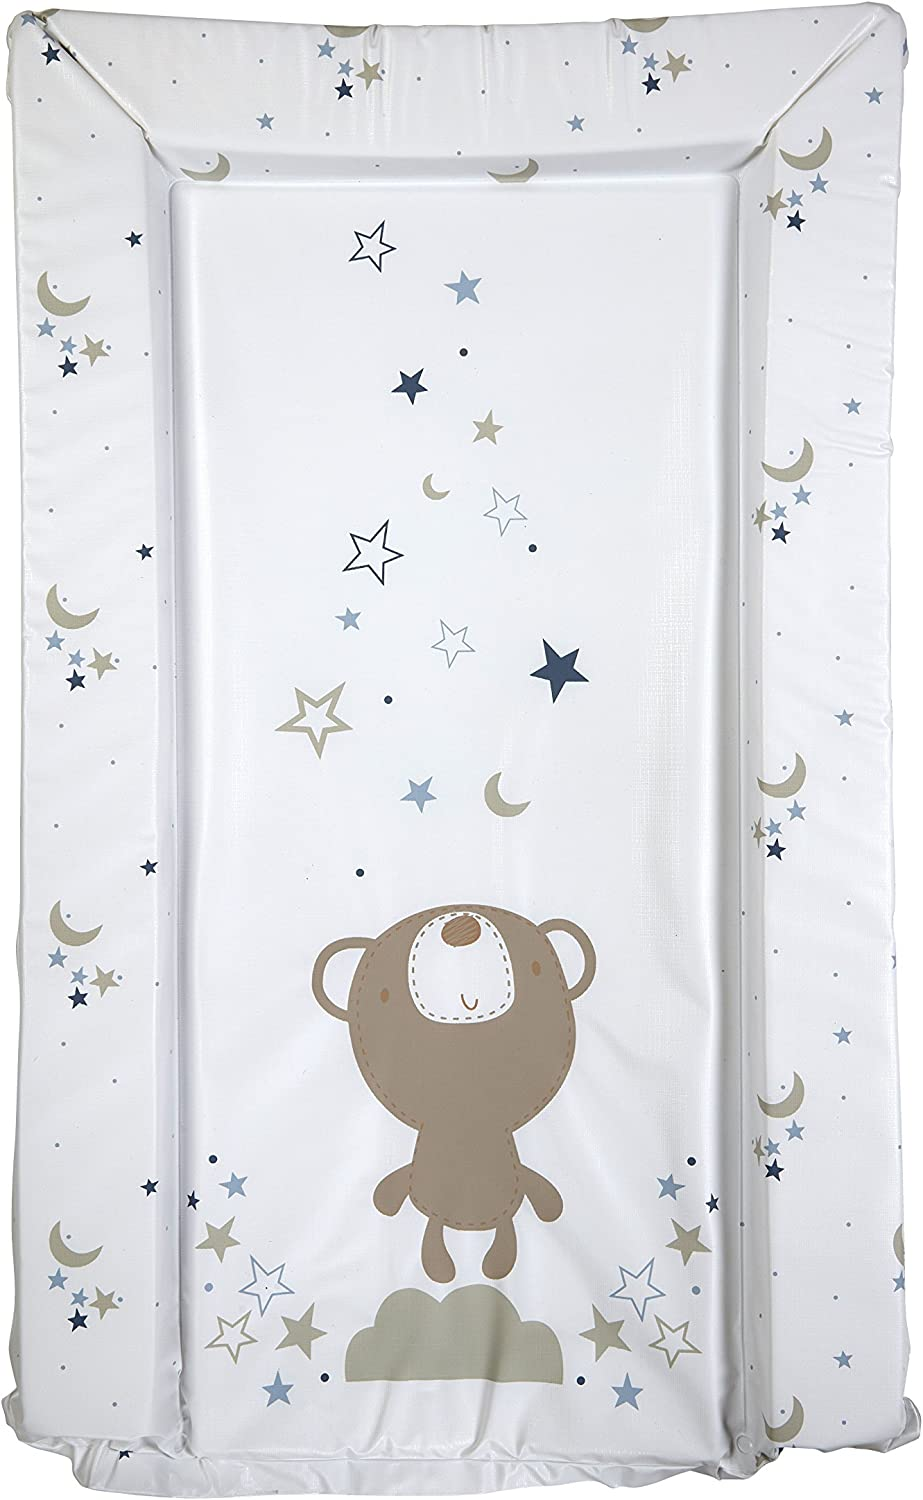 Bed-e-Byes Changing Mats Uniquely Designed Easy Wipe Clean a Perfect Grey Stars Deluxe Waterproof with Raised Padded Edges Practical Addition to Your Nursery L80 x W46cm